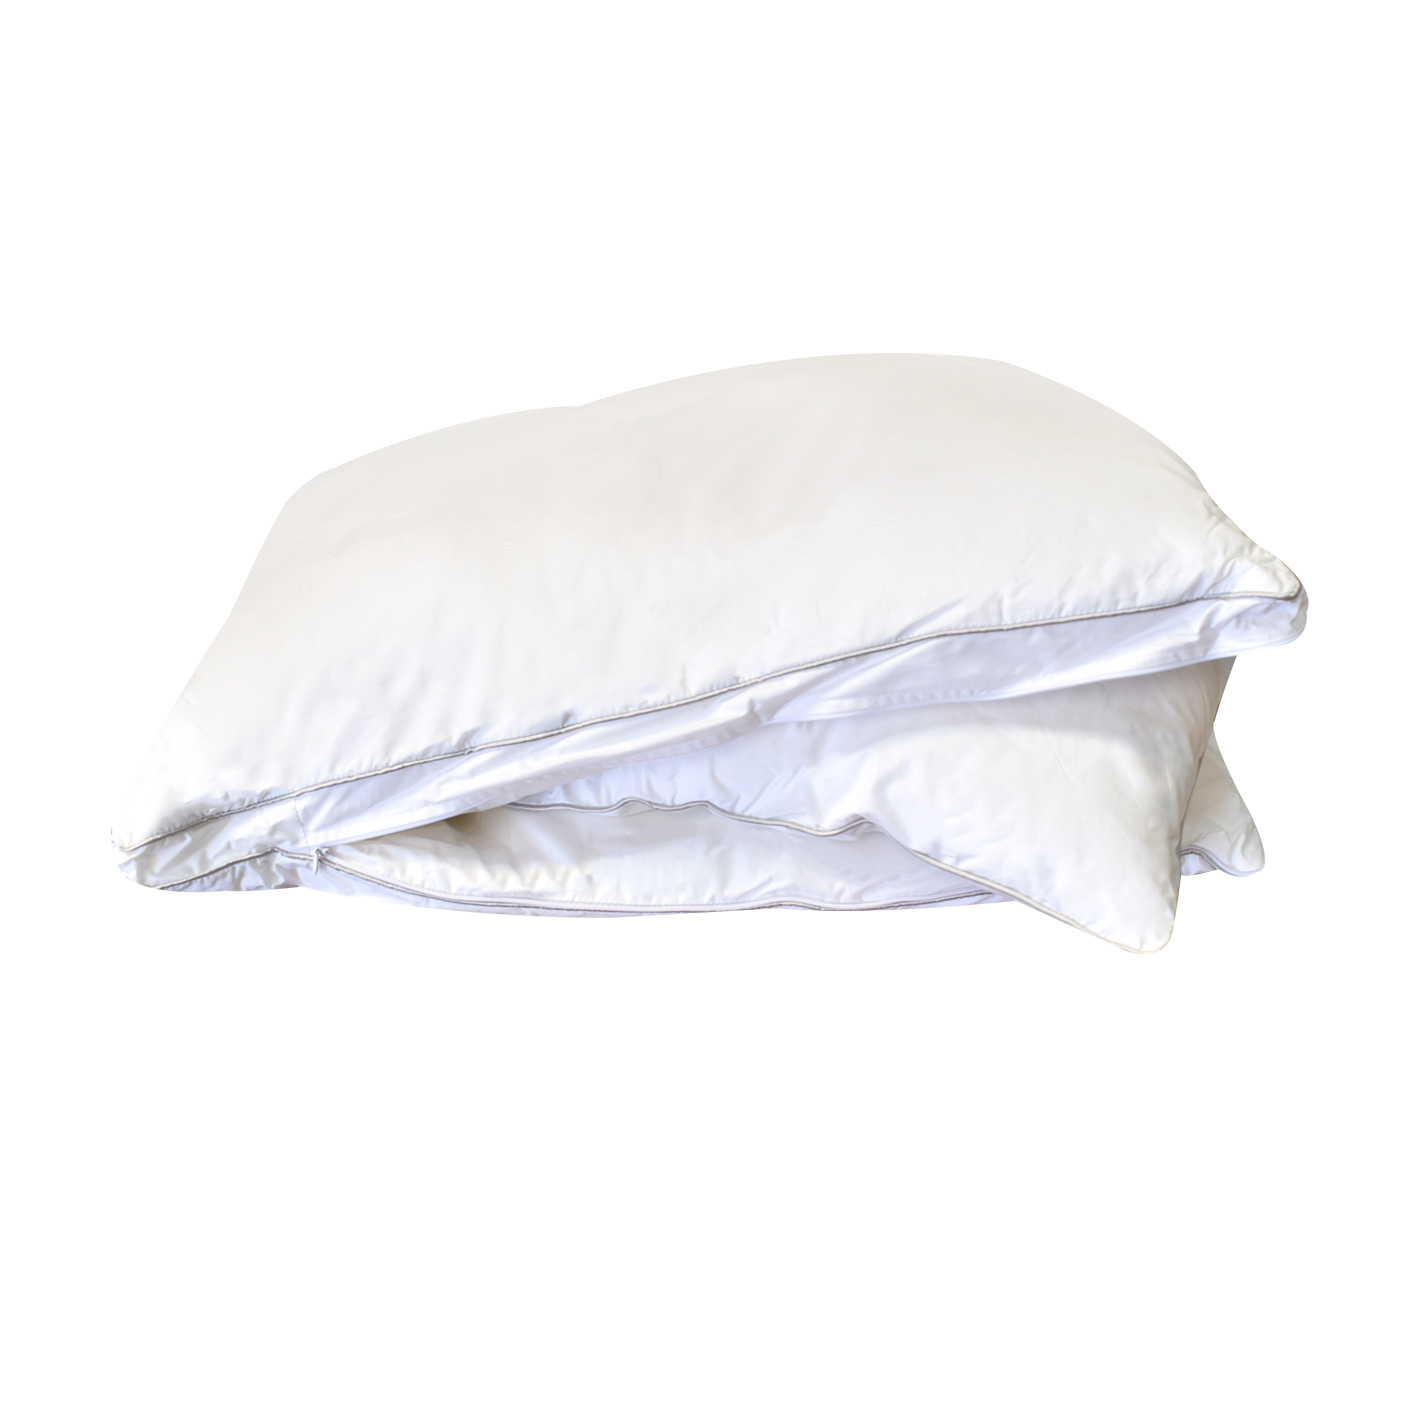 Cangaro pillow وسادة كنجارو